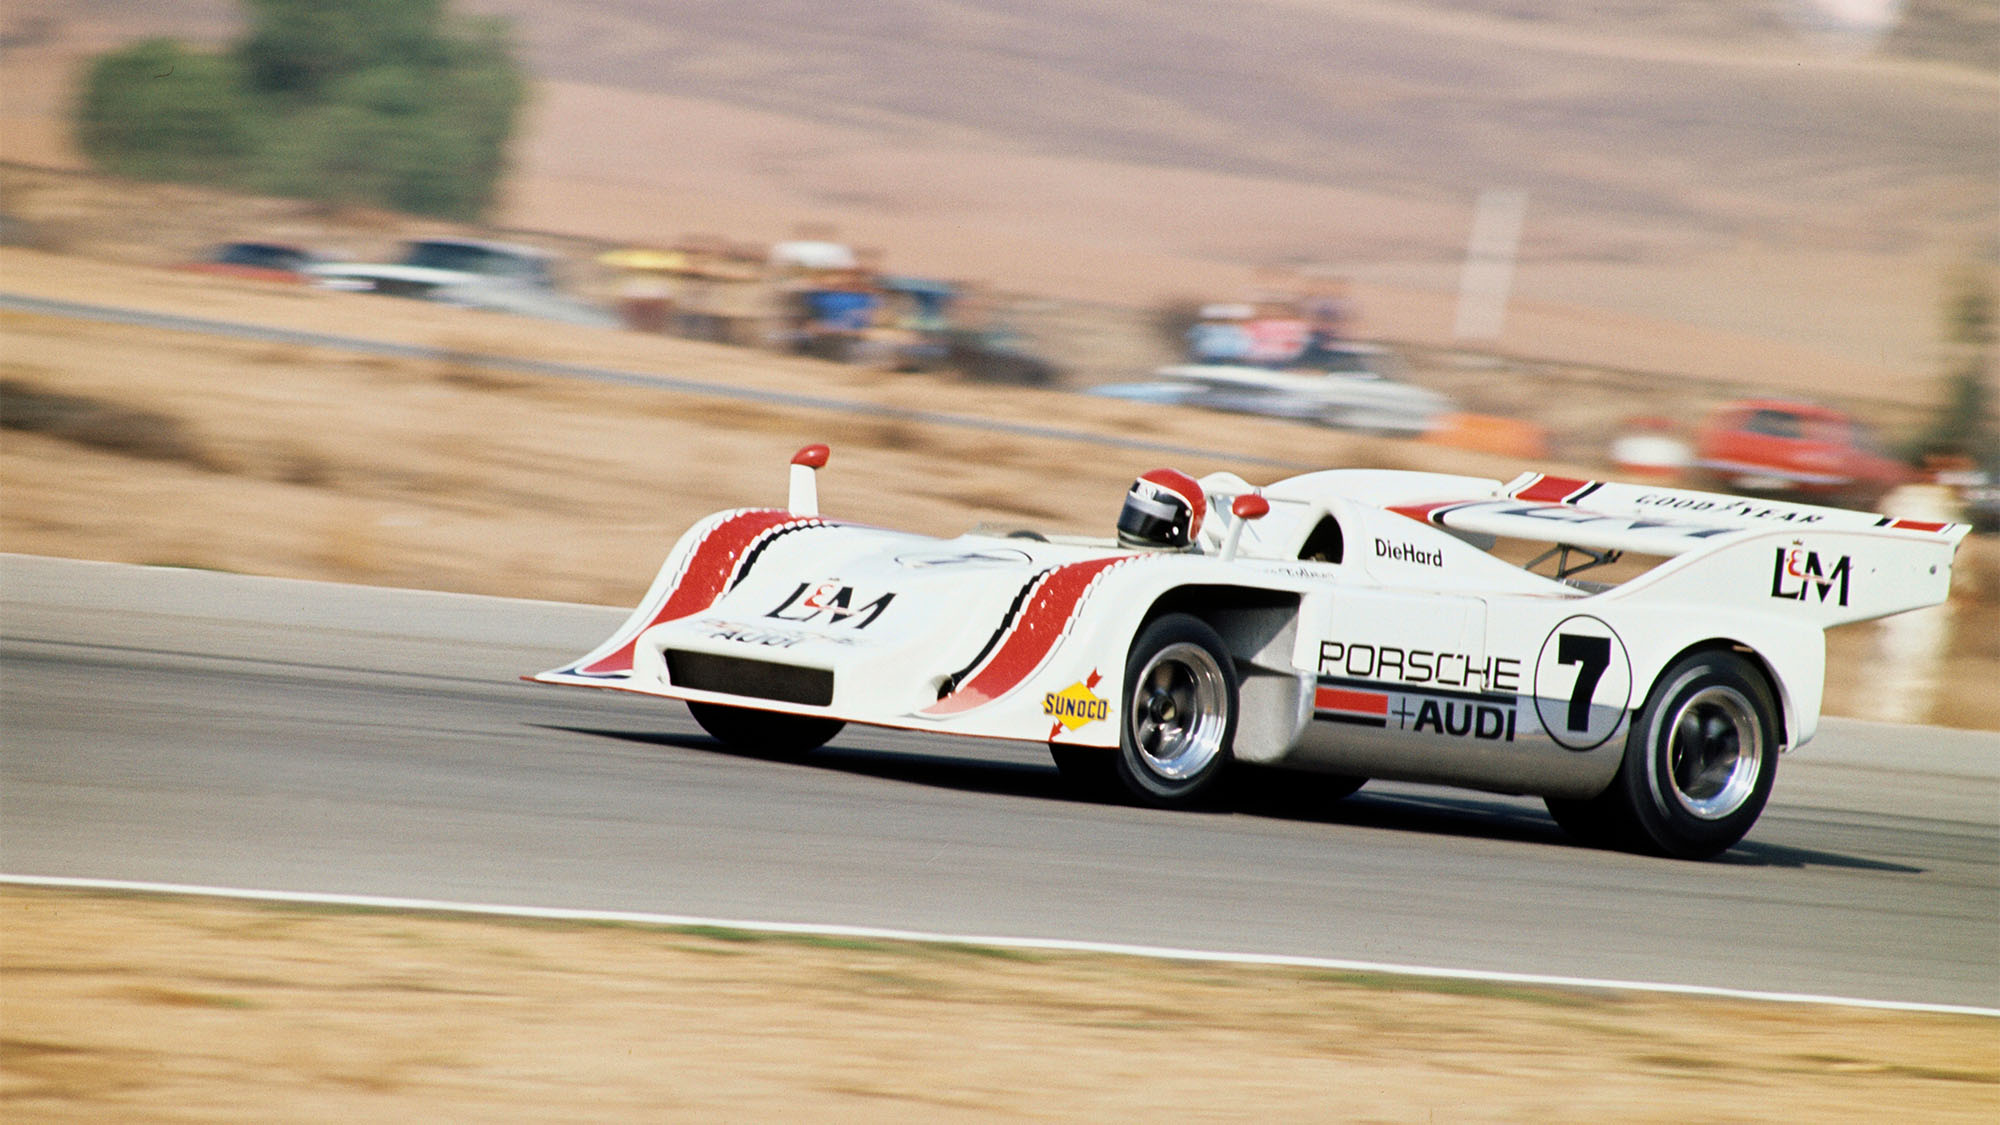 UNITED STATES - NOVEMBER 02: 1972 Times Grand Prix - Riverside - Can-Am. Race winner George Follmer of Penske Racing driving his L&M Porsche-Audi. (Photo by John Lamm/The Enthusiast Network via Getty Images/Getty Images)